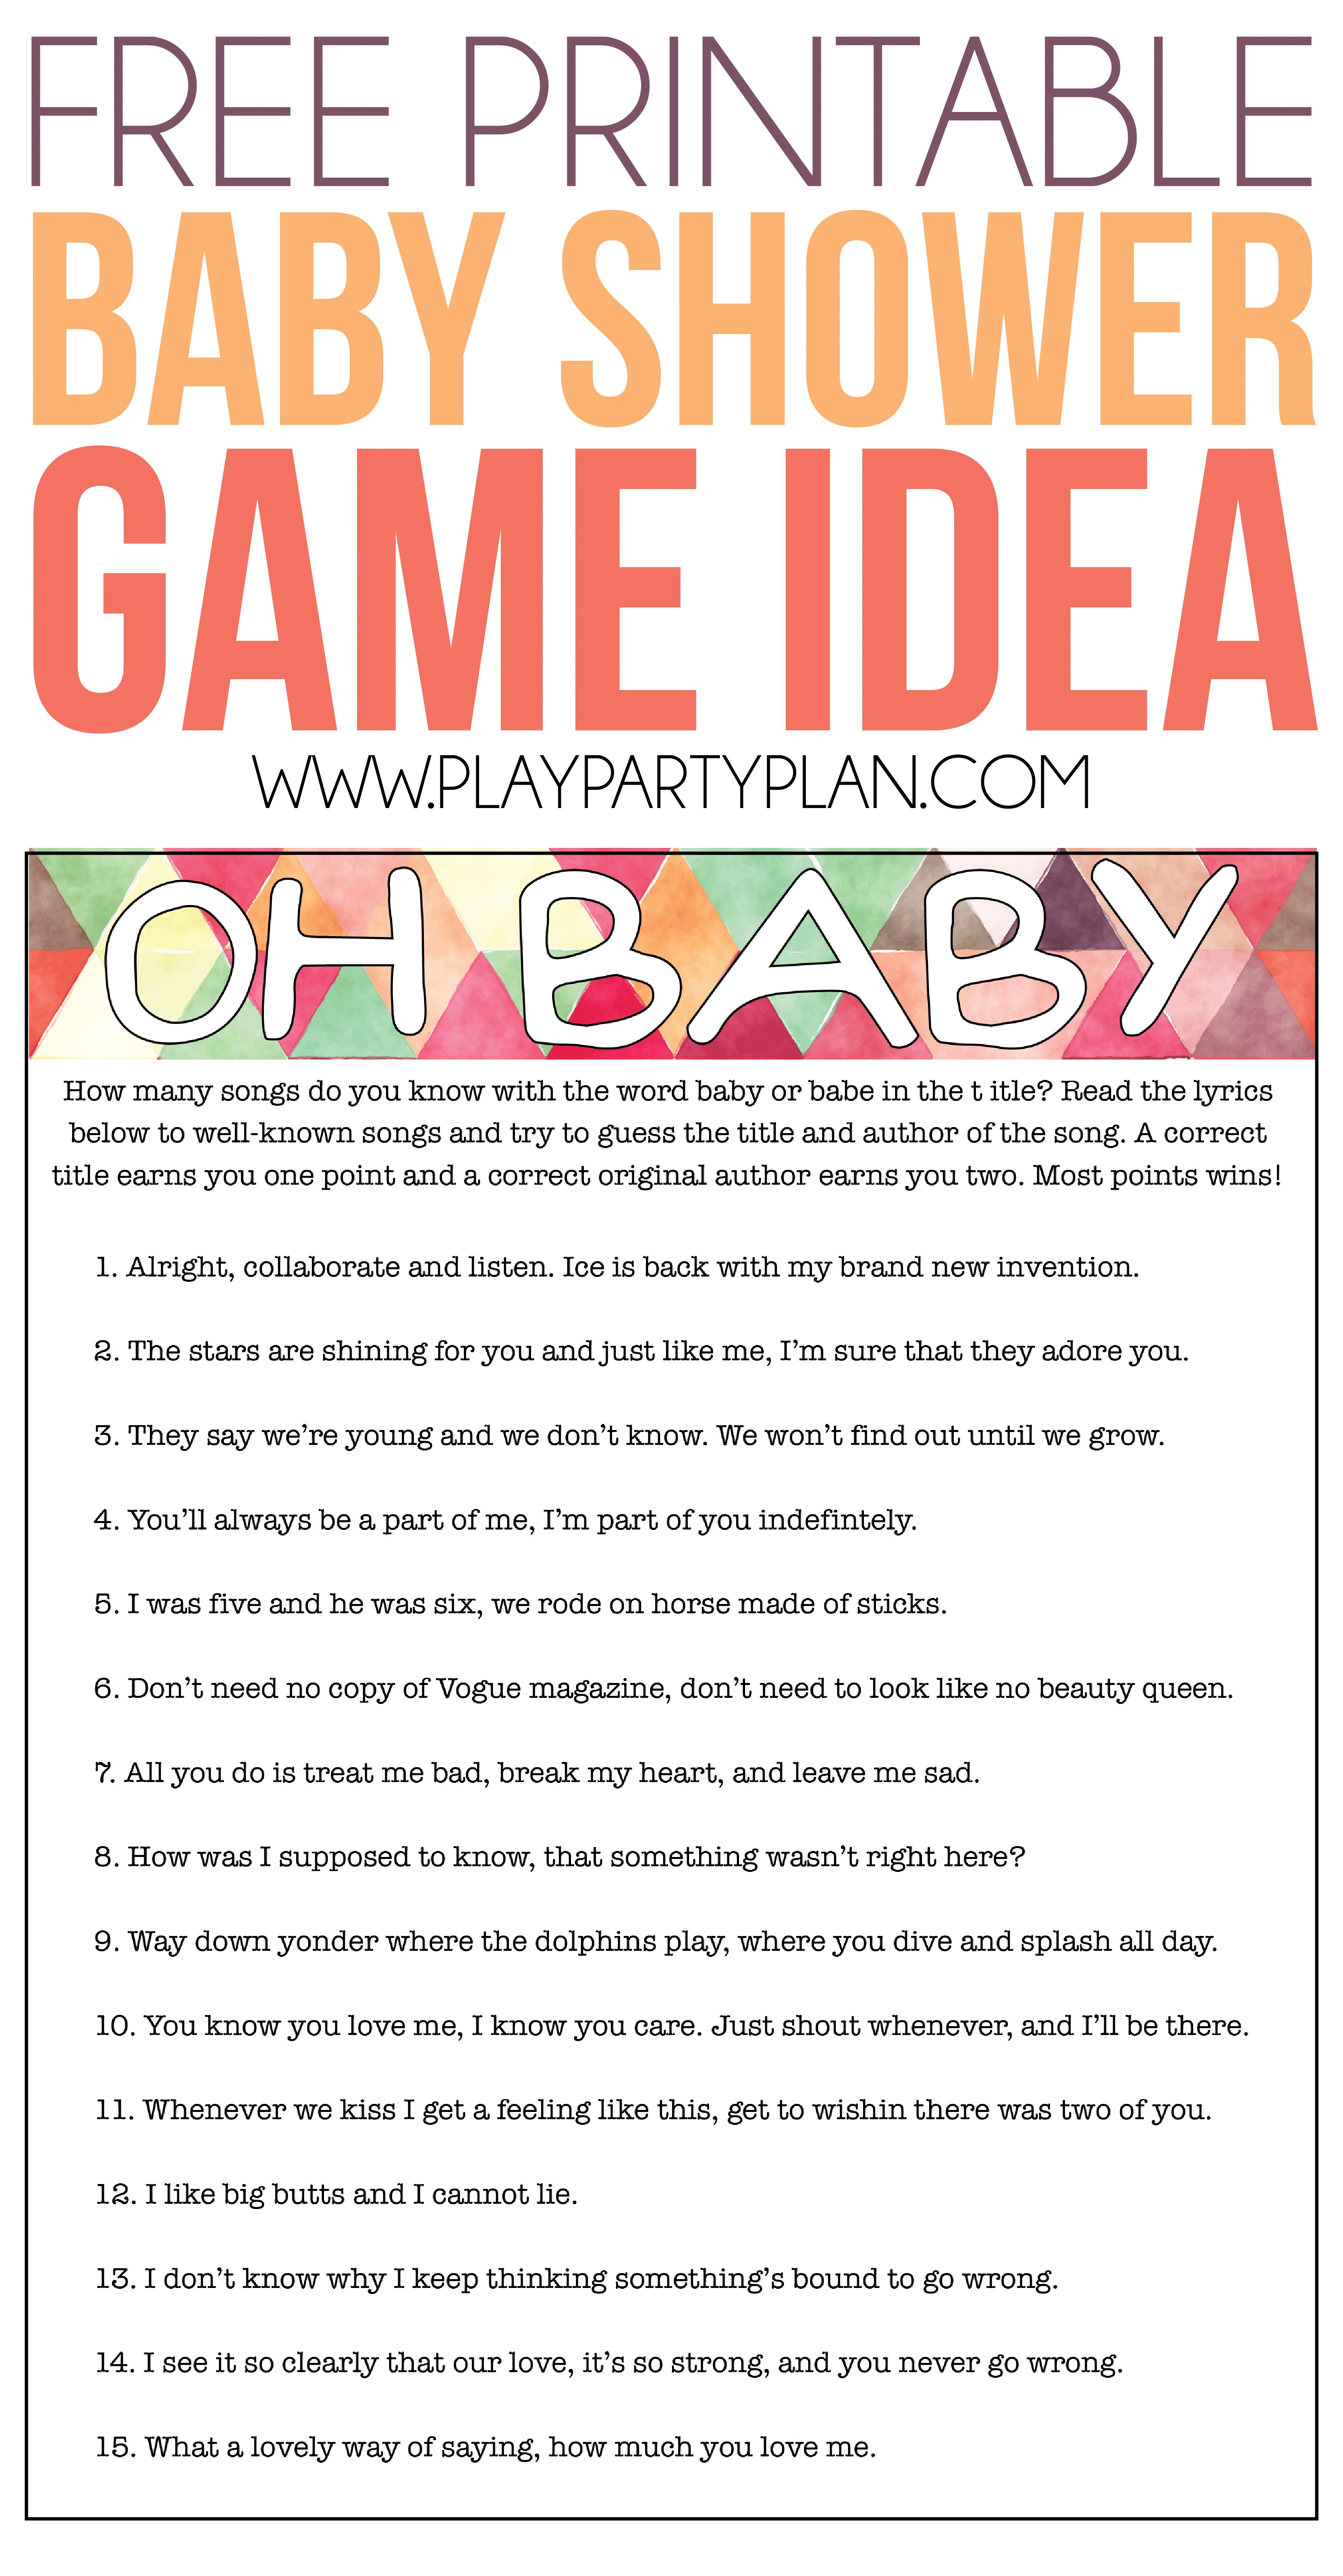 Free Printable Baby Shower Songs Guessing Game - Play Party Plan - Free Printable Baby Shower Games With Answer Key